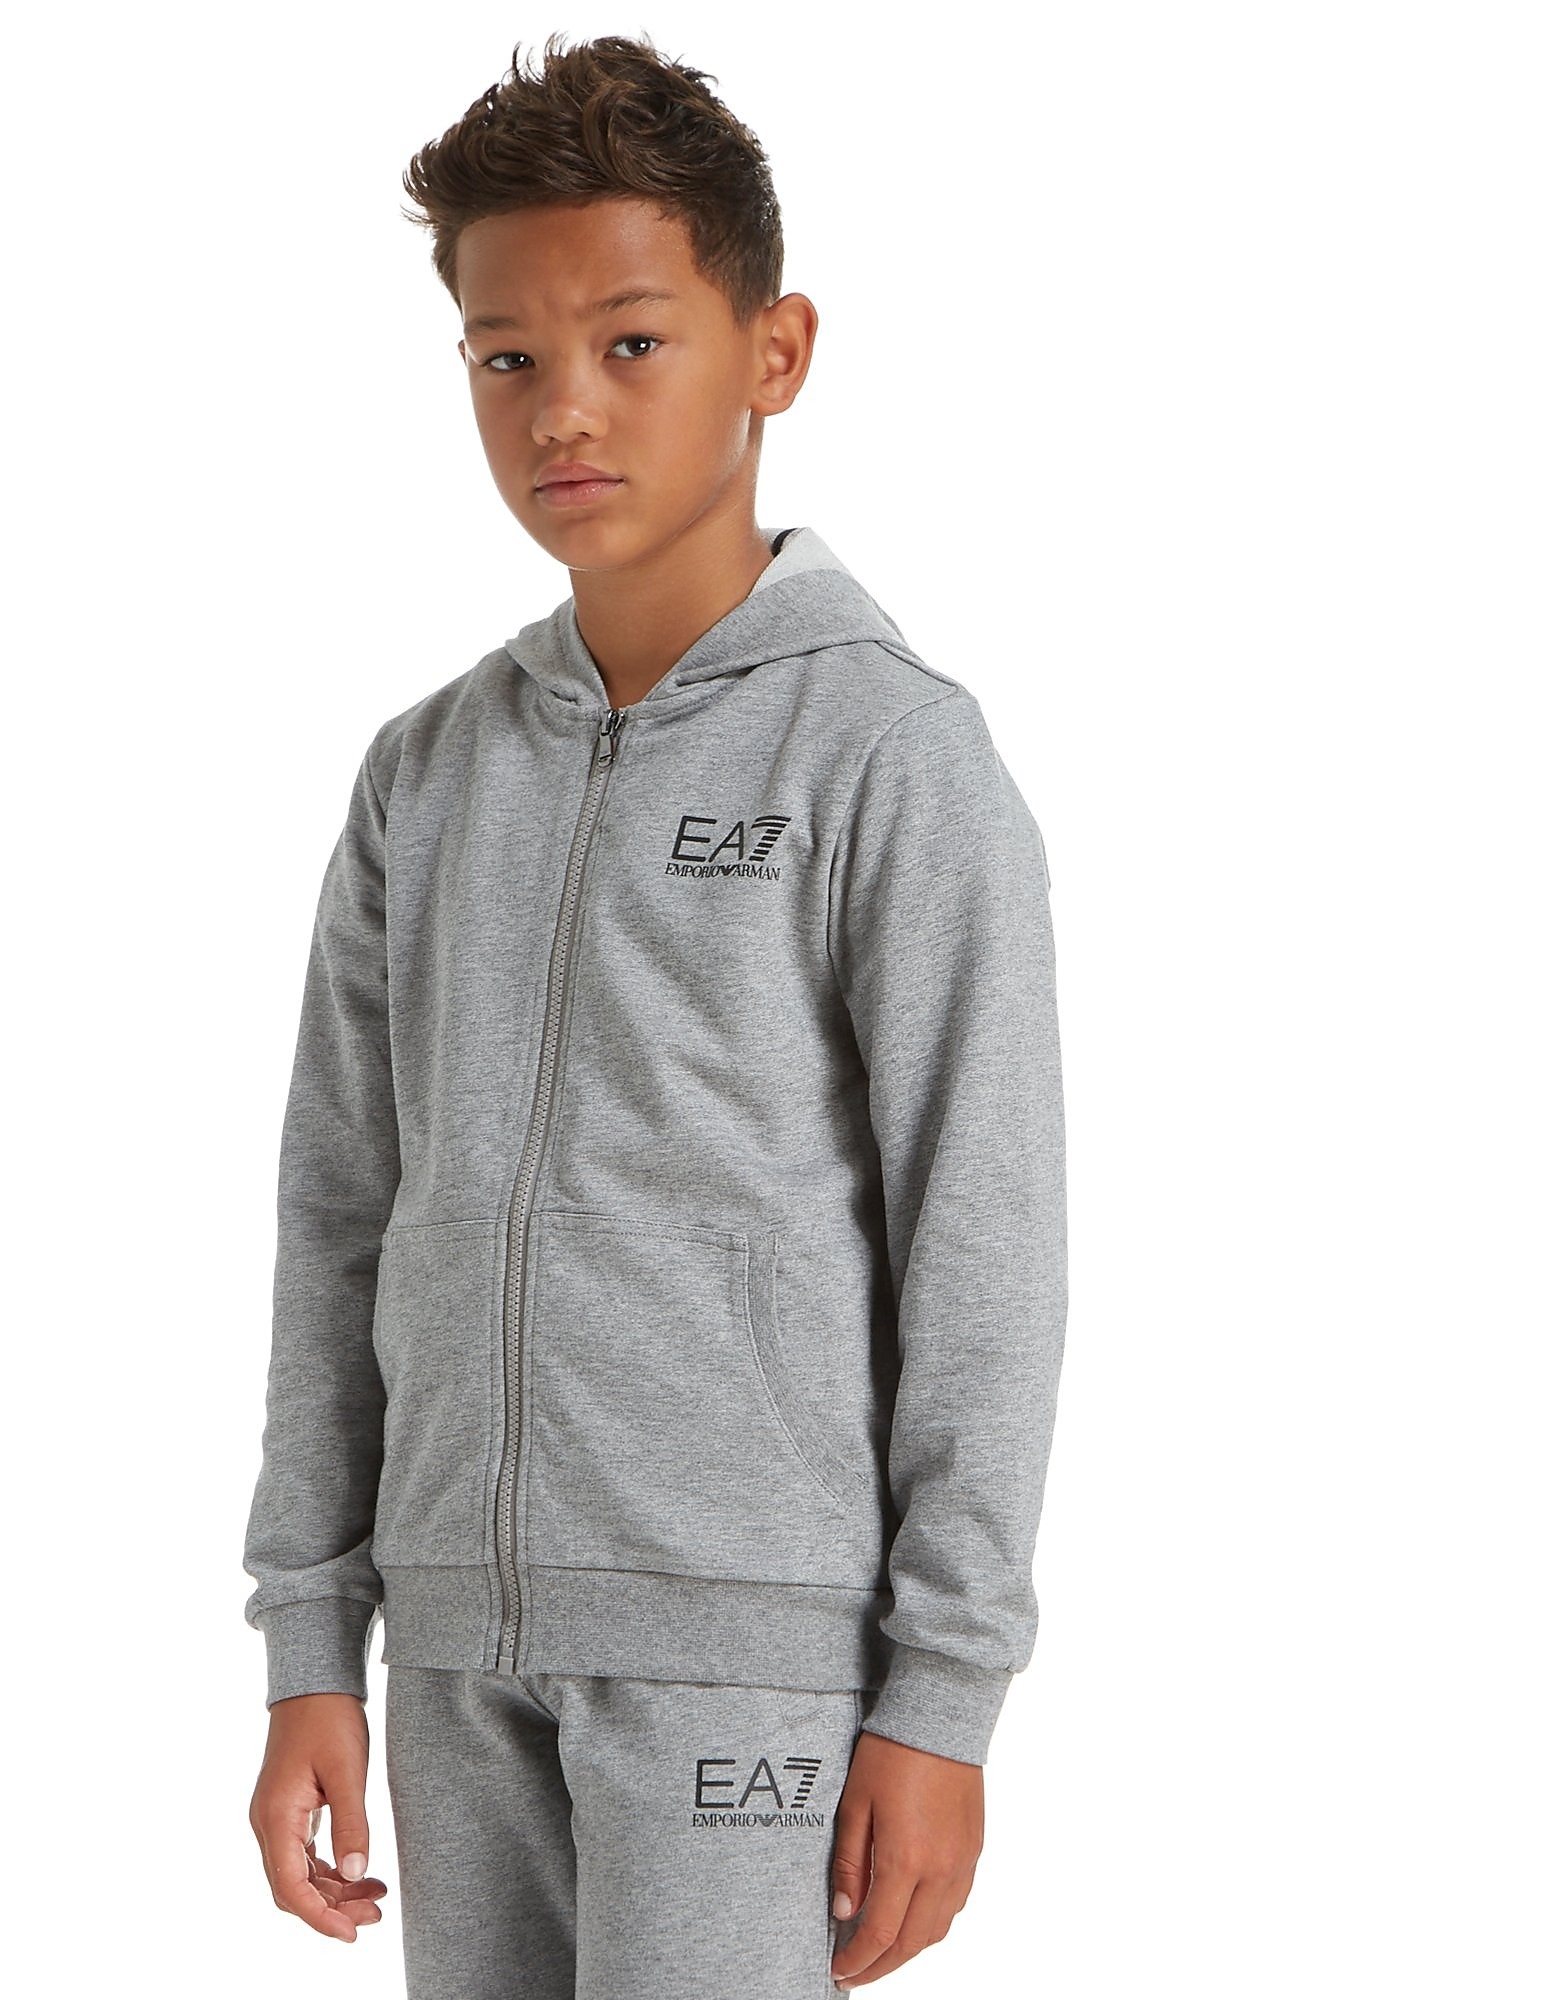 Emporio Armani EA7 Core Full Zip Hoodie Junior